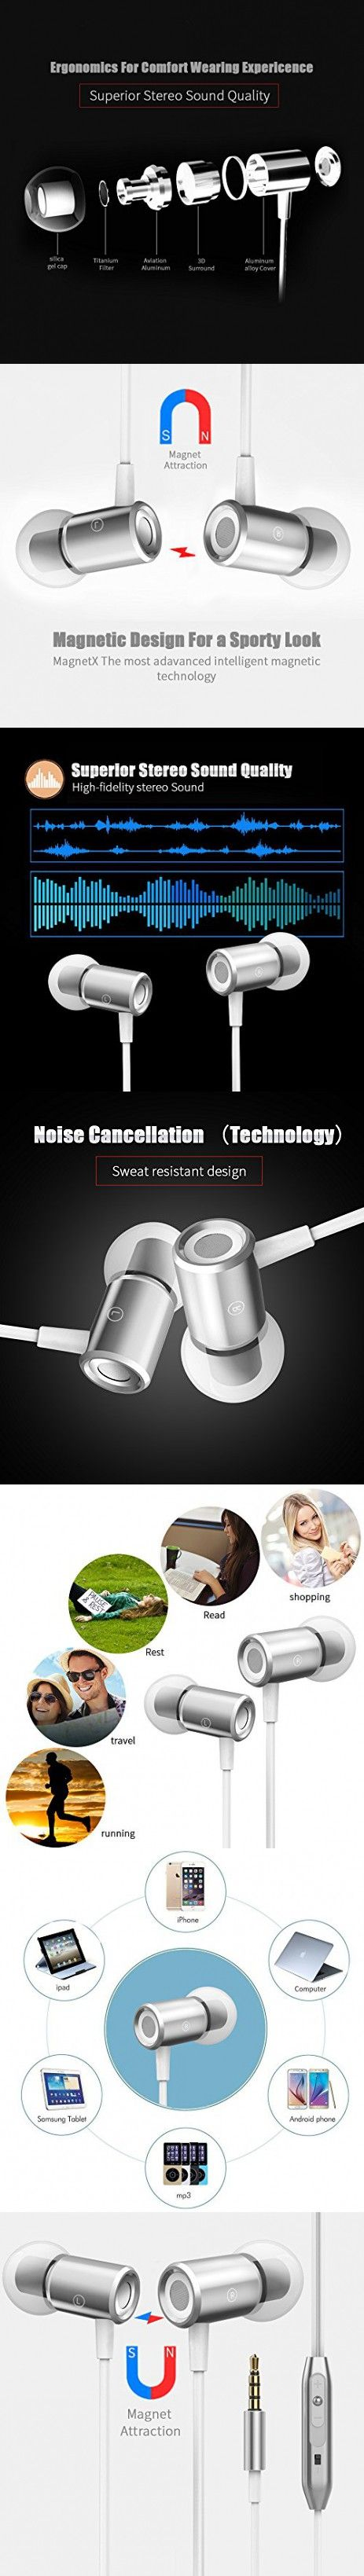 In-Ear Earbuds, VANTEN Magnet Attraction Wired In-Ear Hi-fi Sports Earbuds Headphones Stereo Earphones Earbuds with Mic Stereo Bass Headset with Volume Control and 3.5mm Jack (Silver)